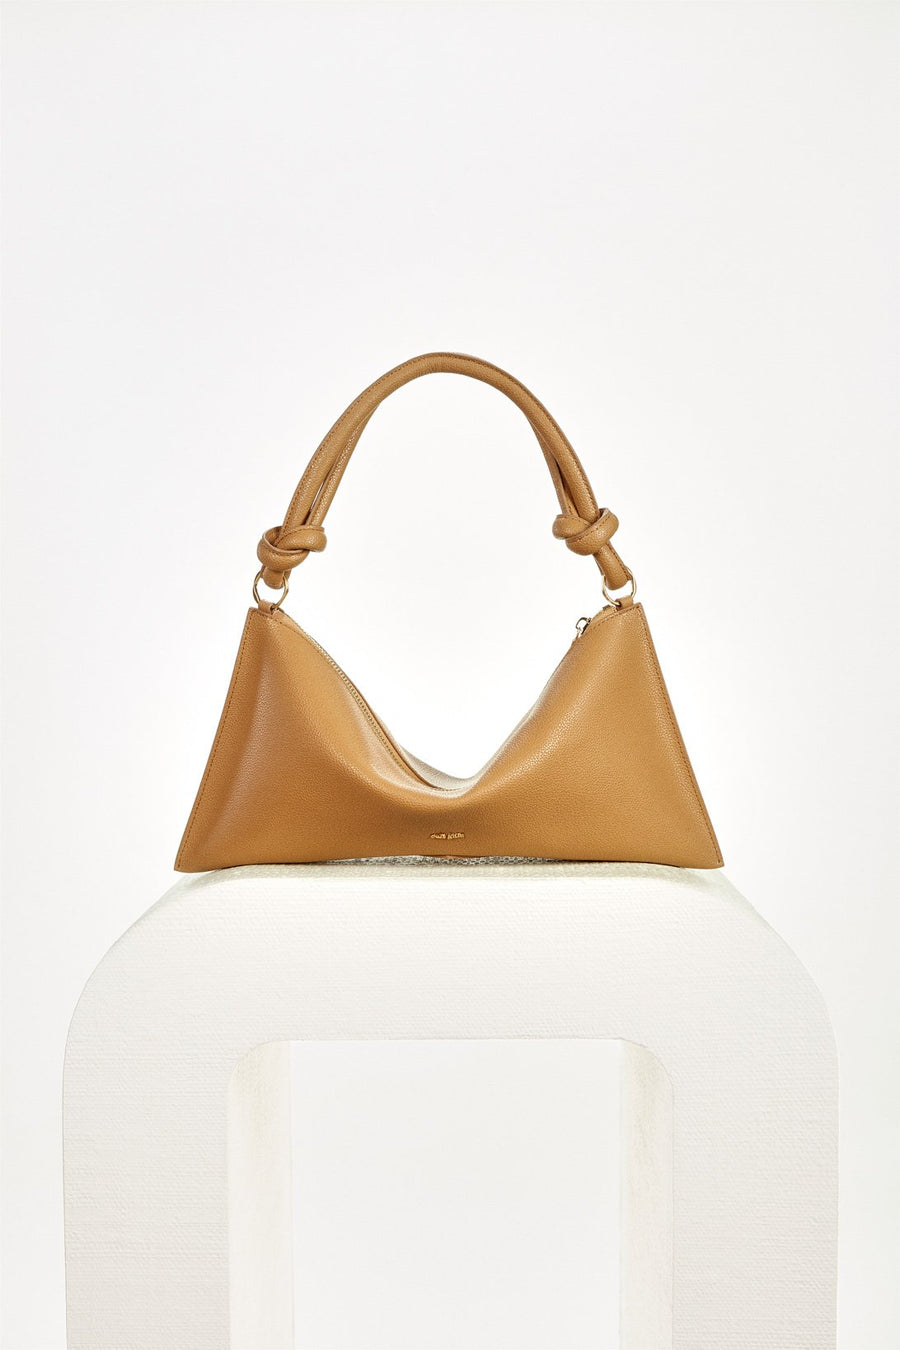 HERA MINI SHOULDER BAG - CAMEL